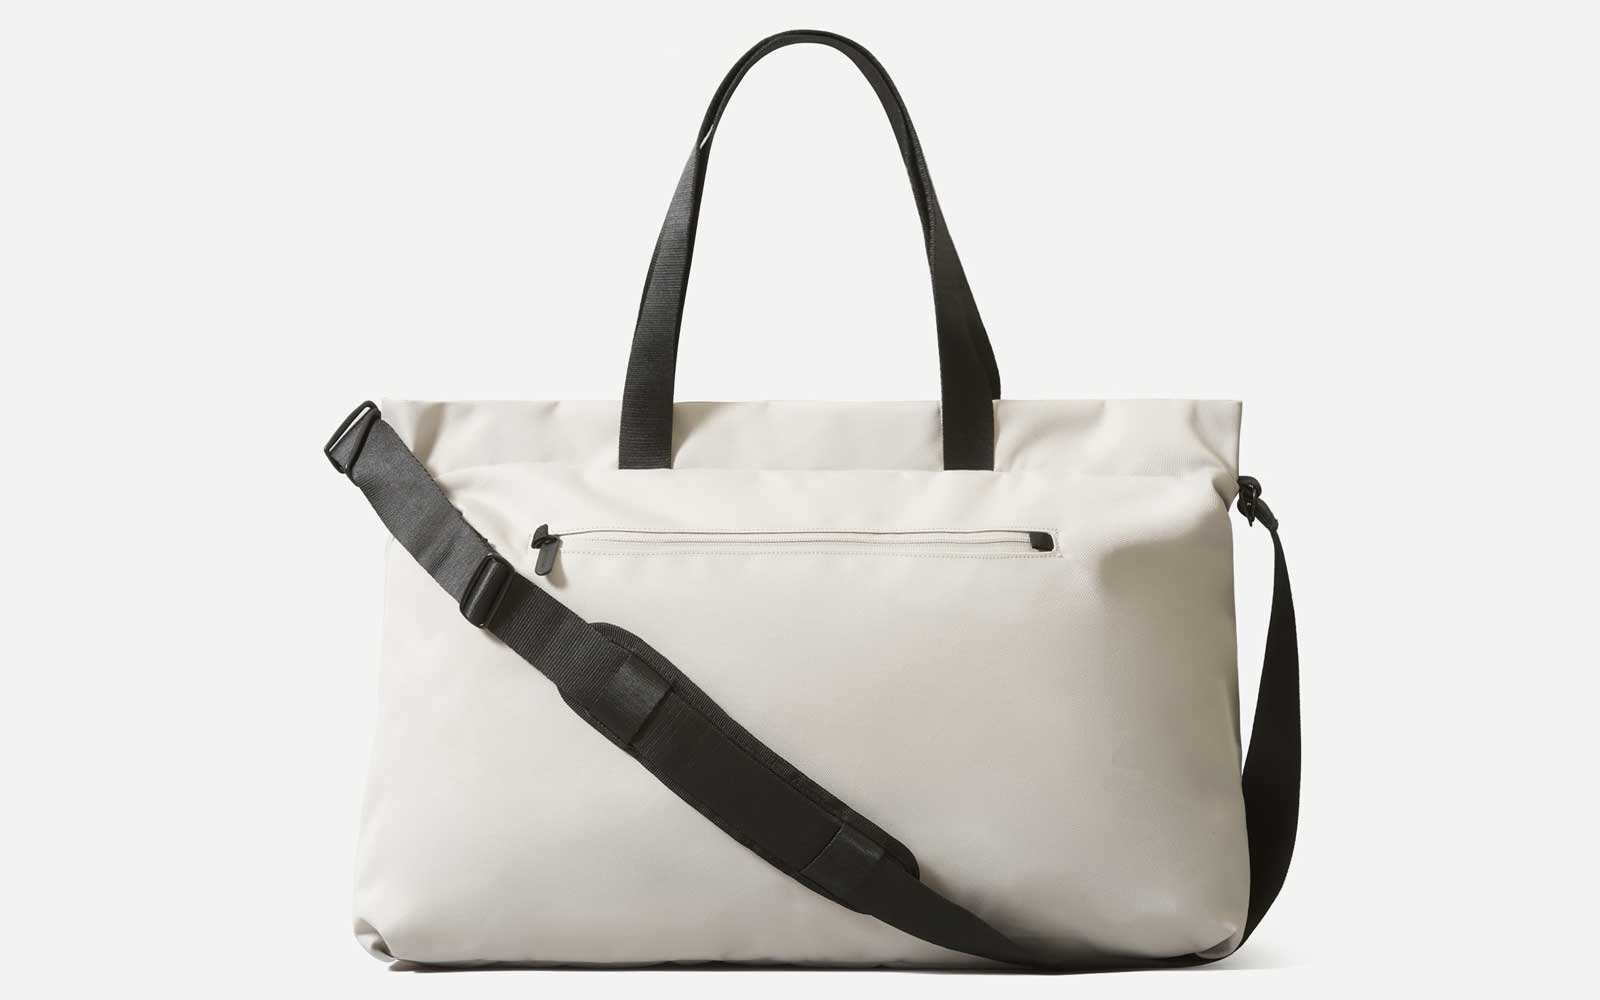 This new weekender bag from Everlane is the brand's most convenient travel bag yet